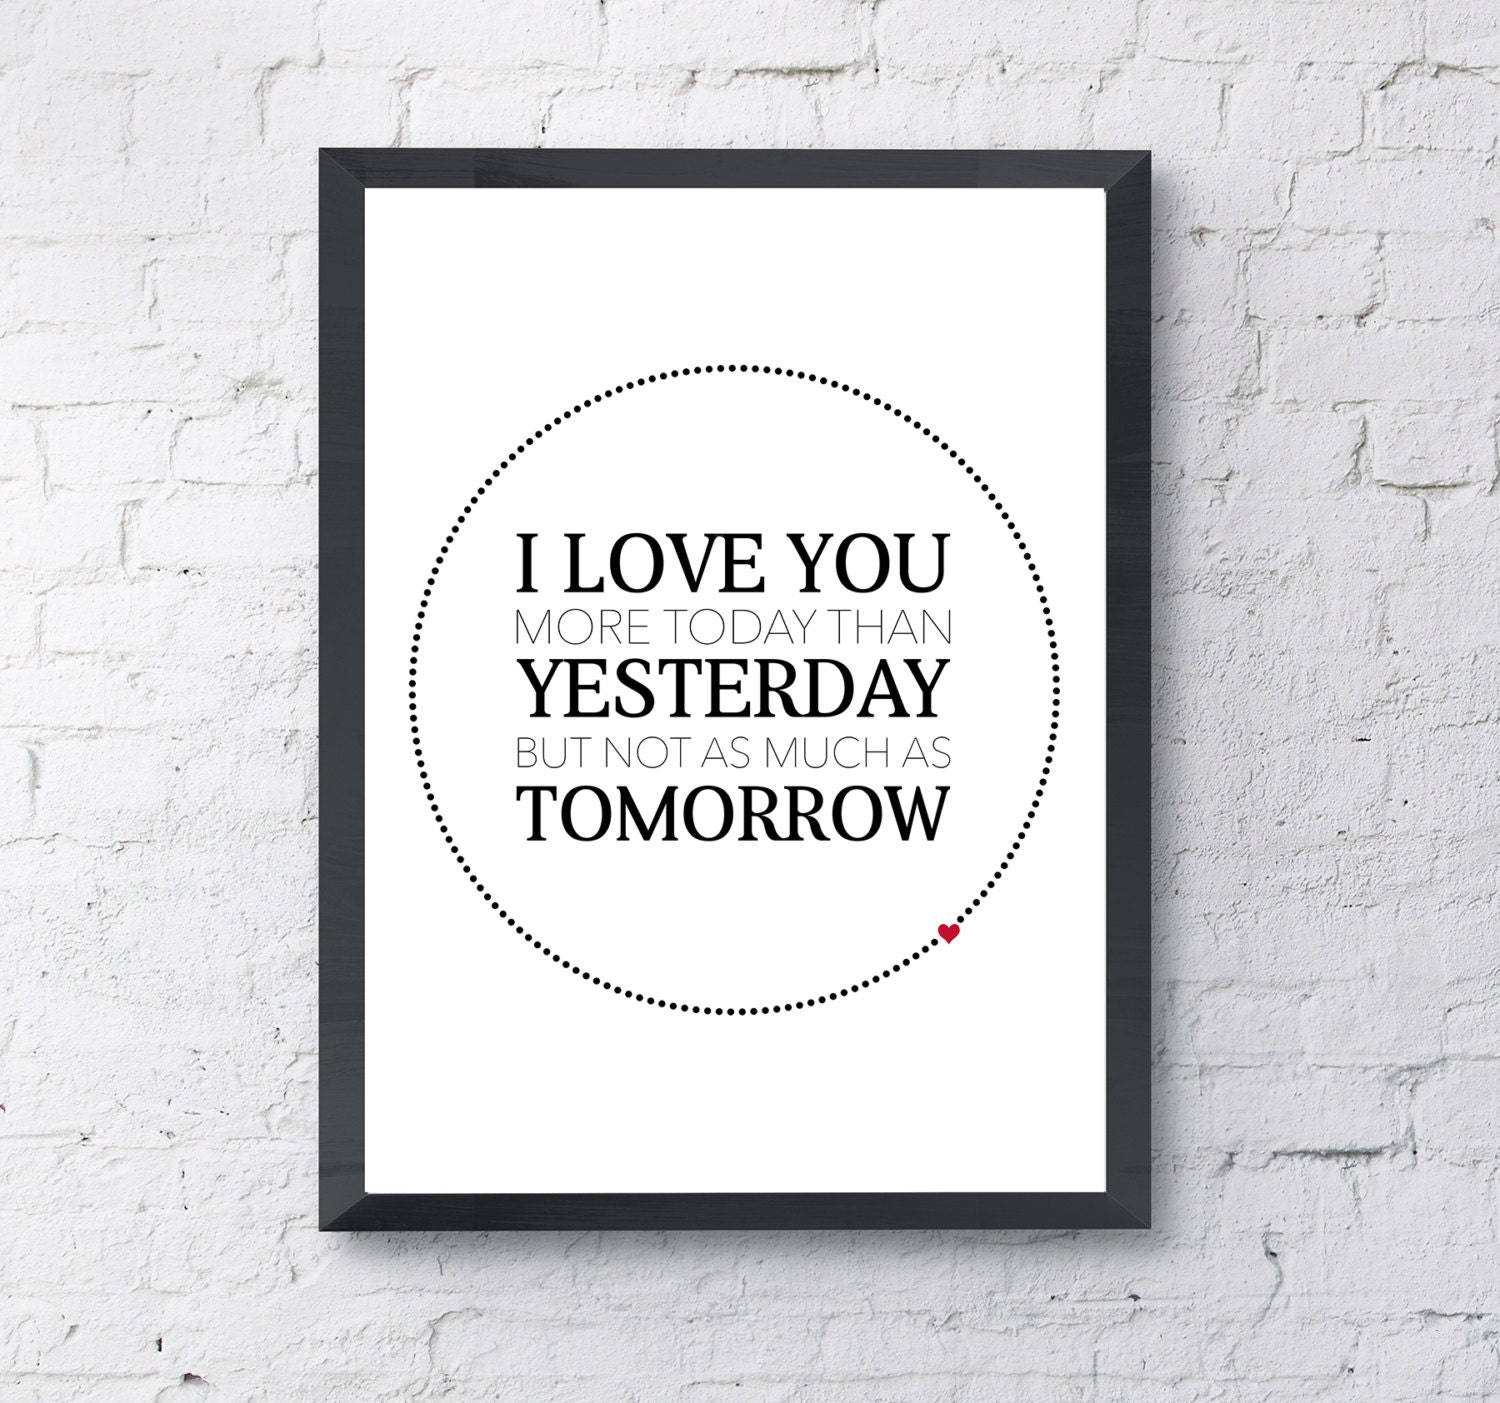 Wall Art Love You More : Valentines day wall art love print i you more